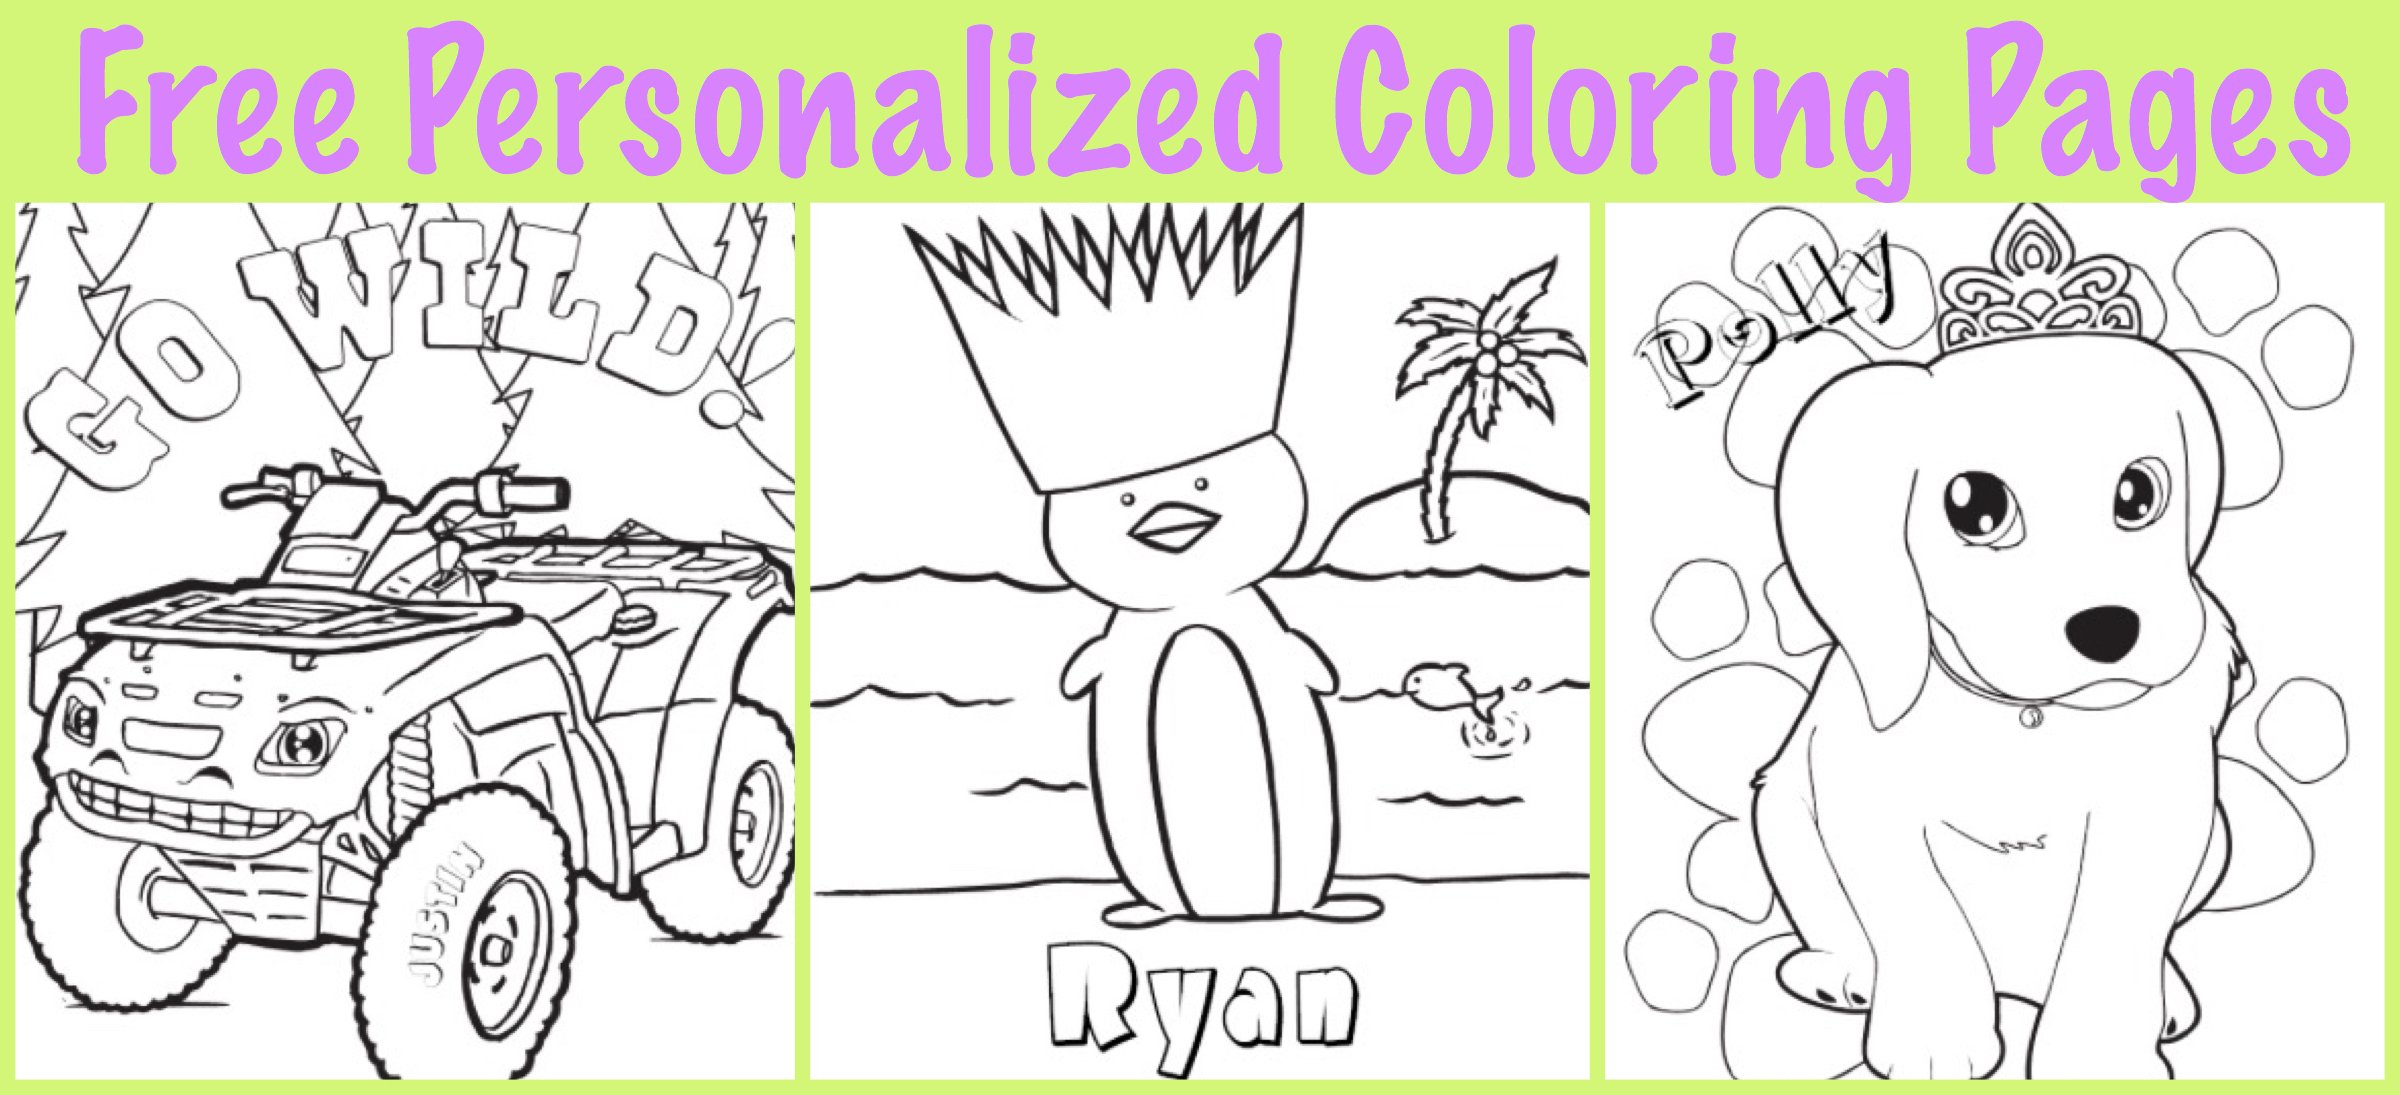 personalized coloring pages FREE Personalized Printable Coloring Pages for Kids  personalized coloring pages